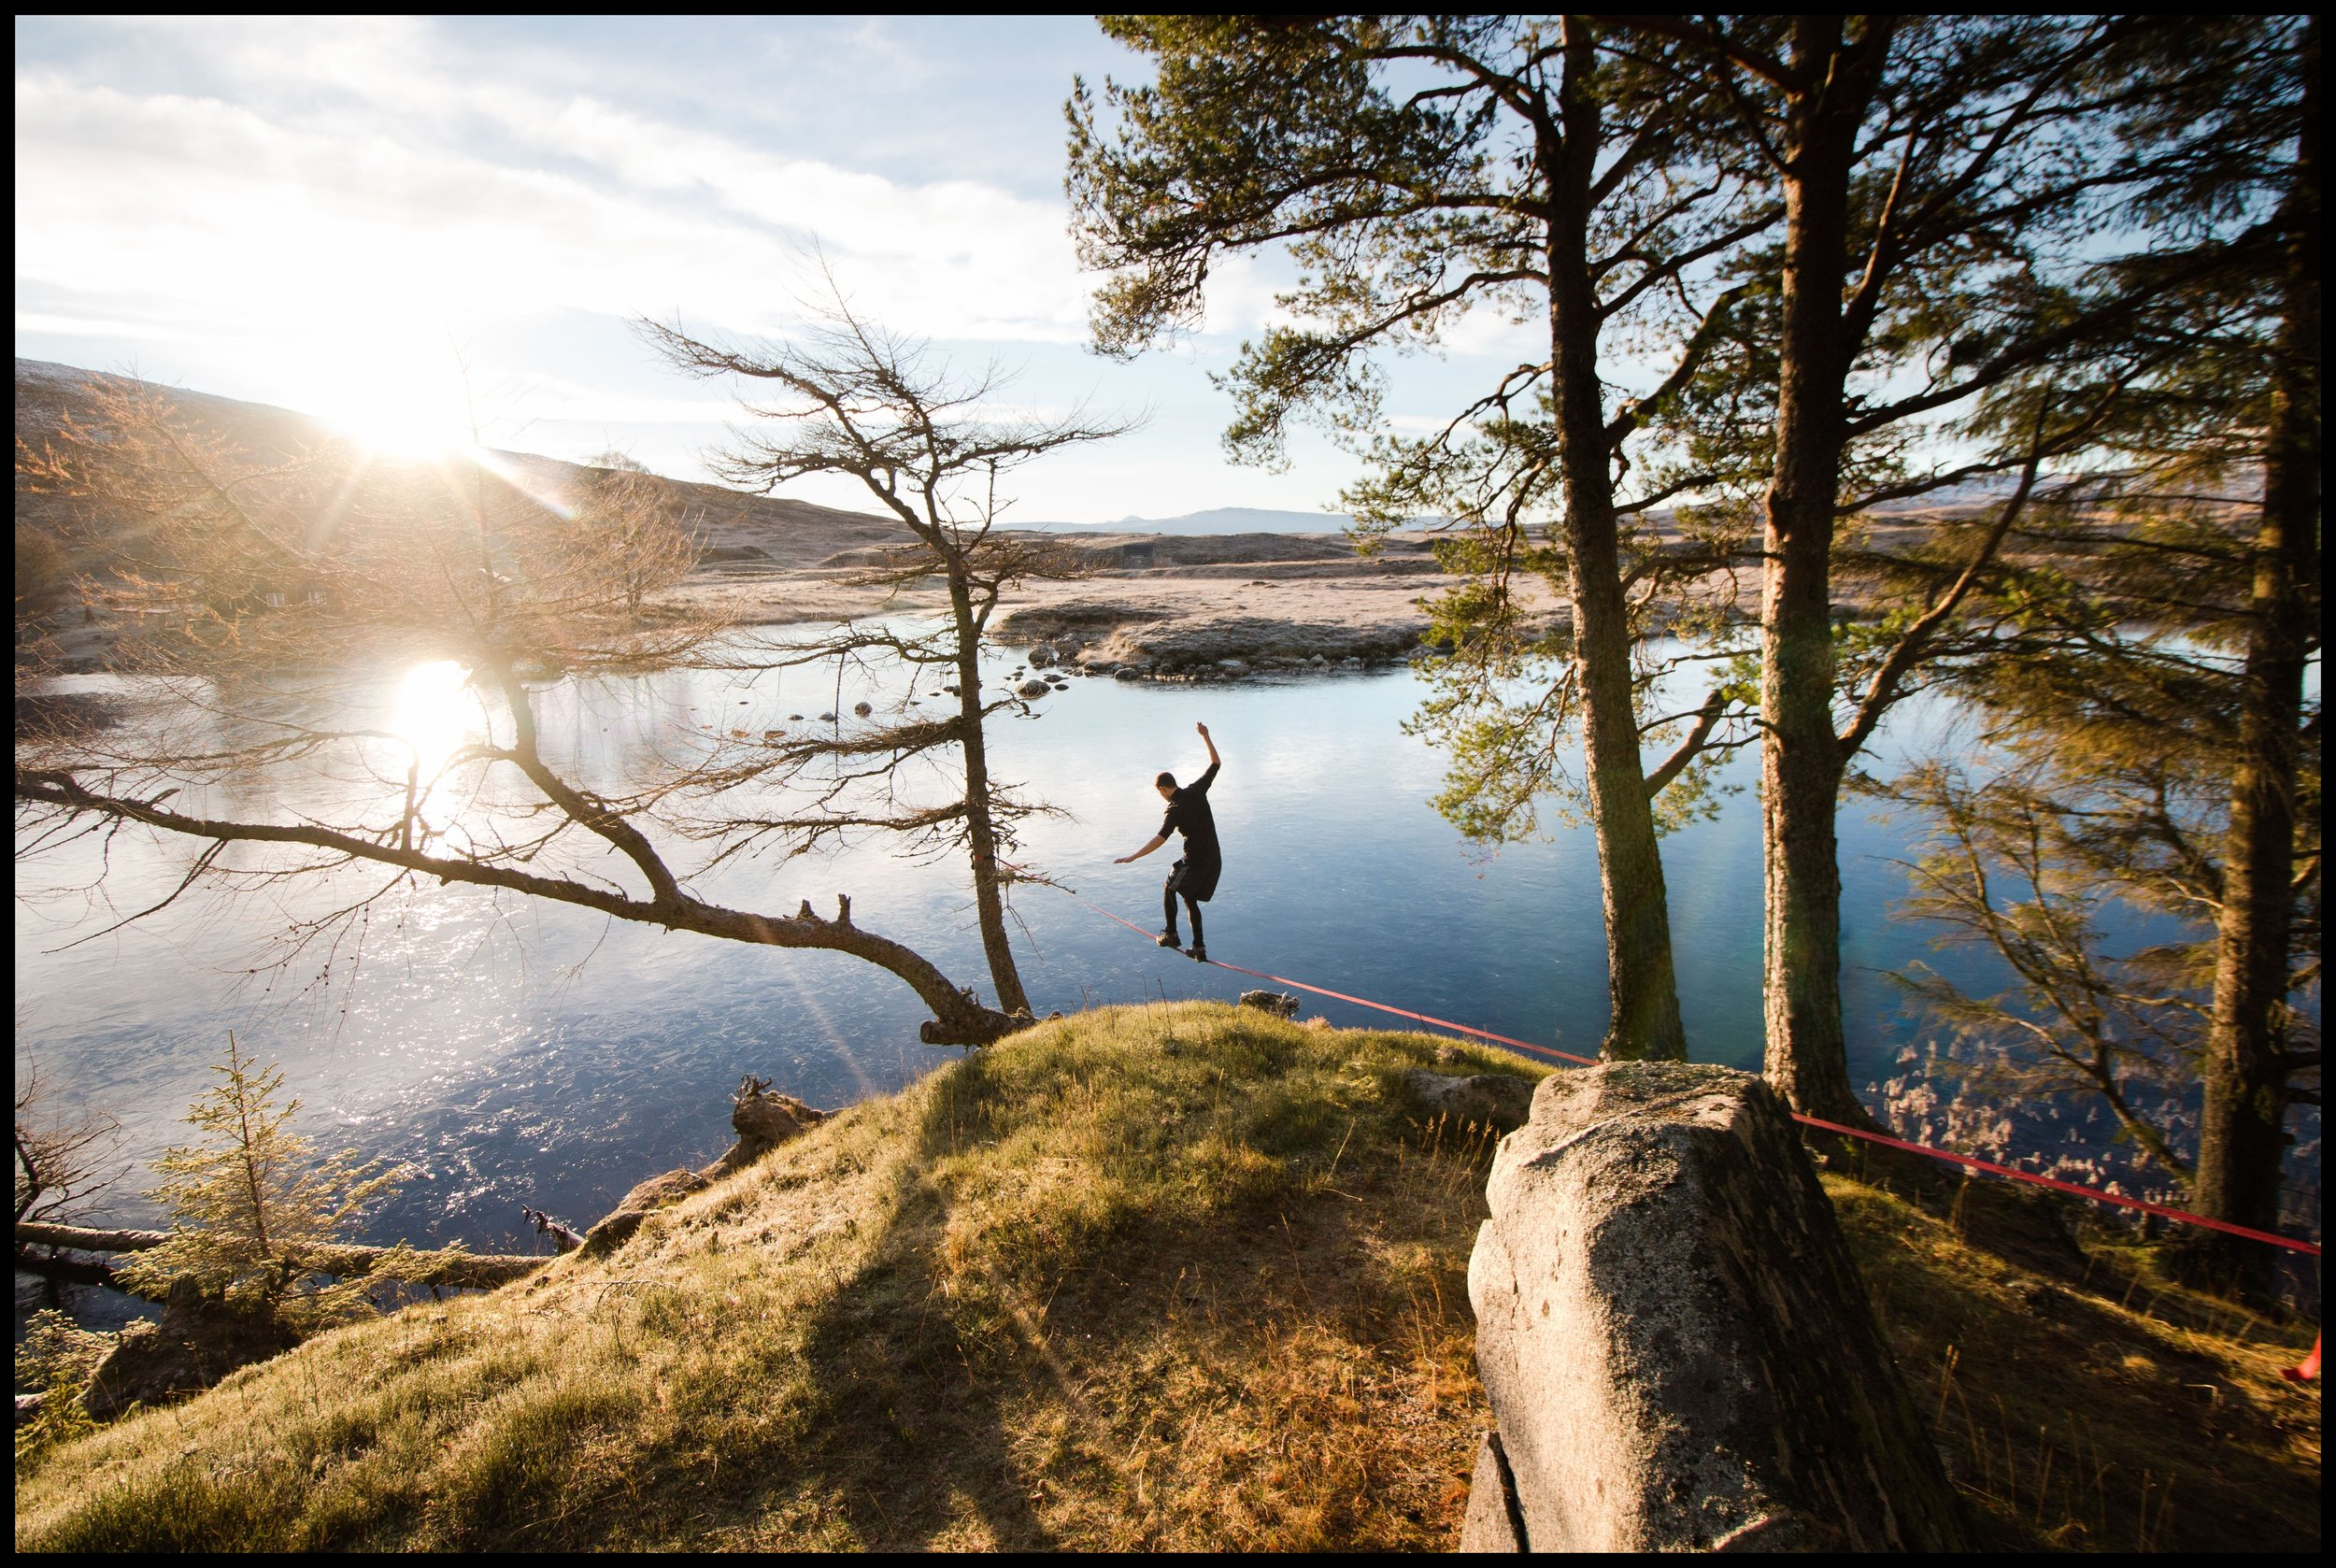 Loch Ossian, 1 mile from Corrour train station